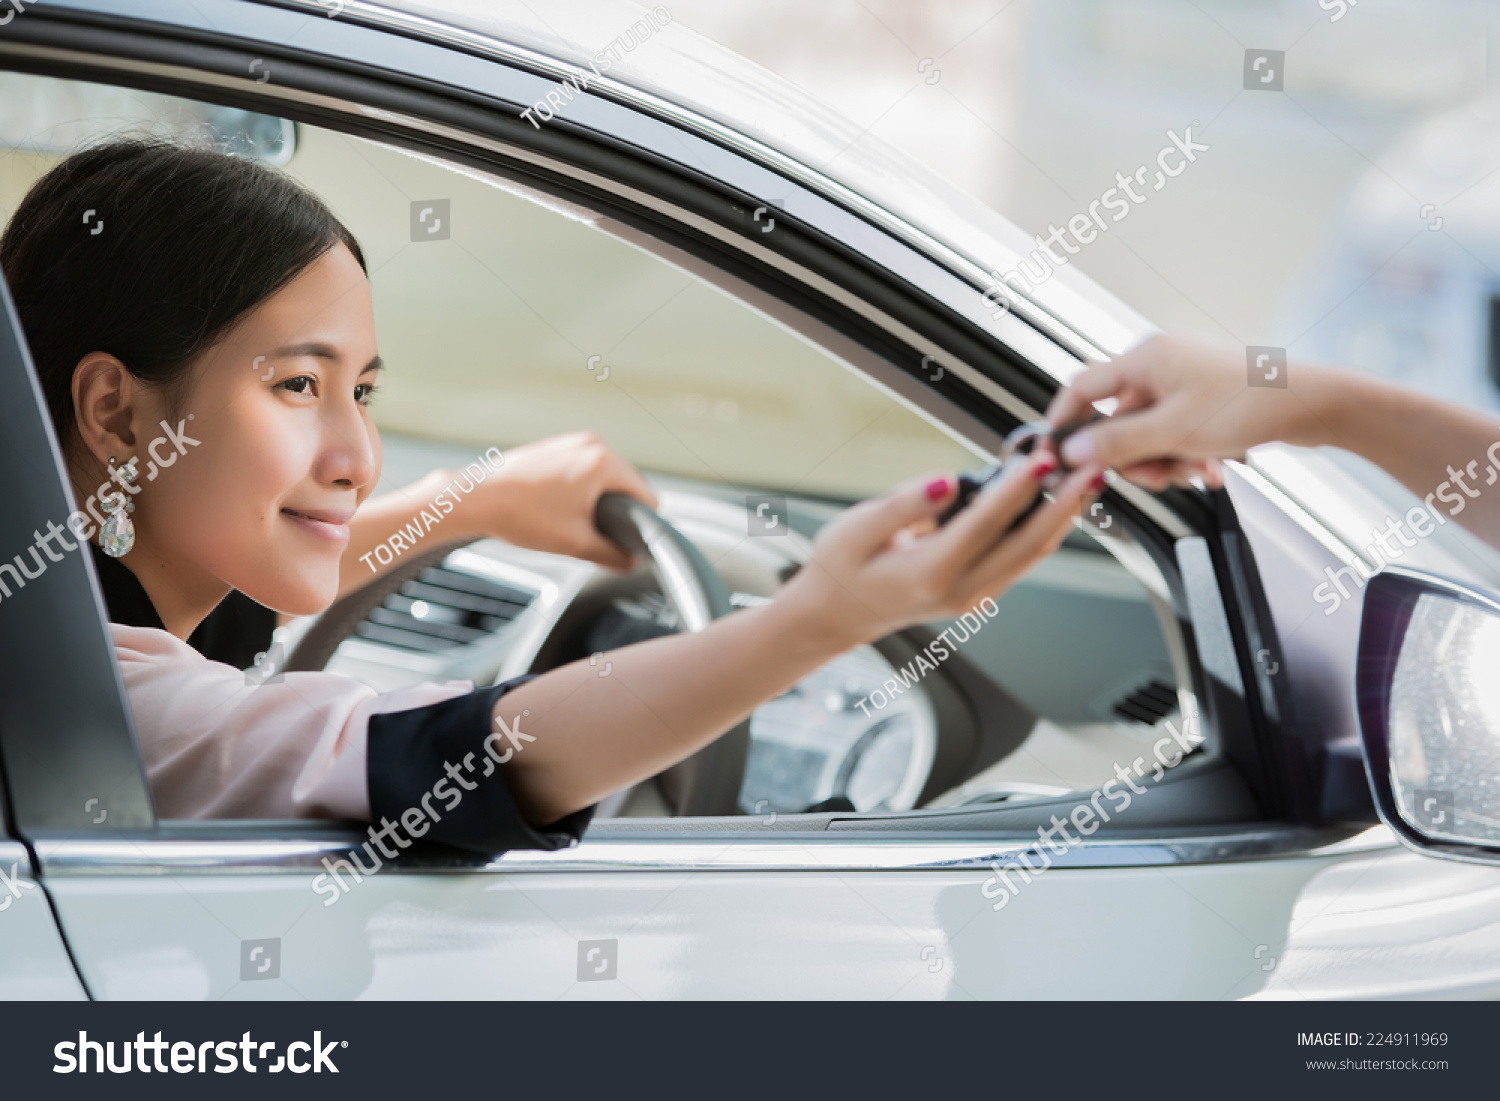 Asian Women Key Driver Car Stock Photo 224911969 - Shutterstock-7746